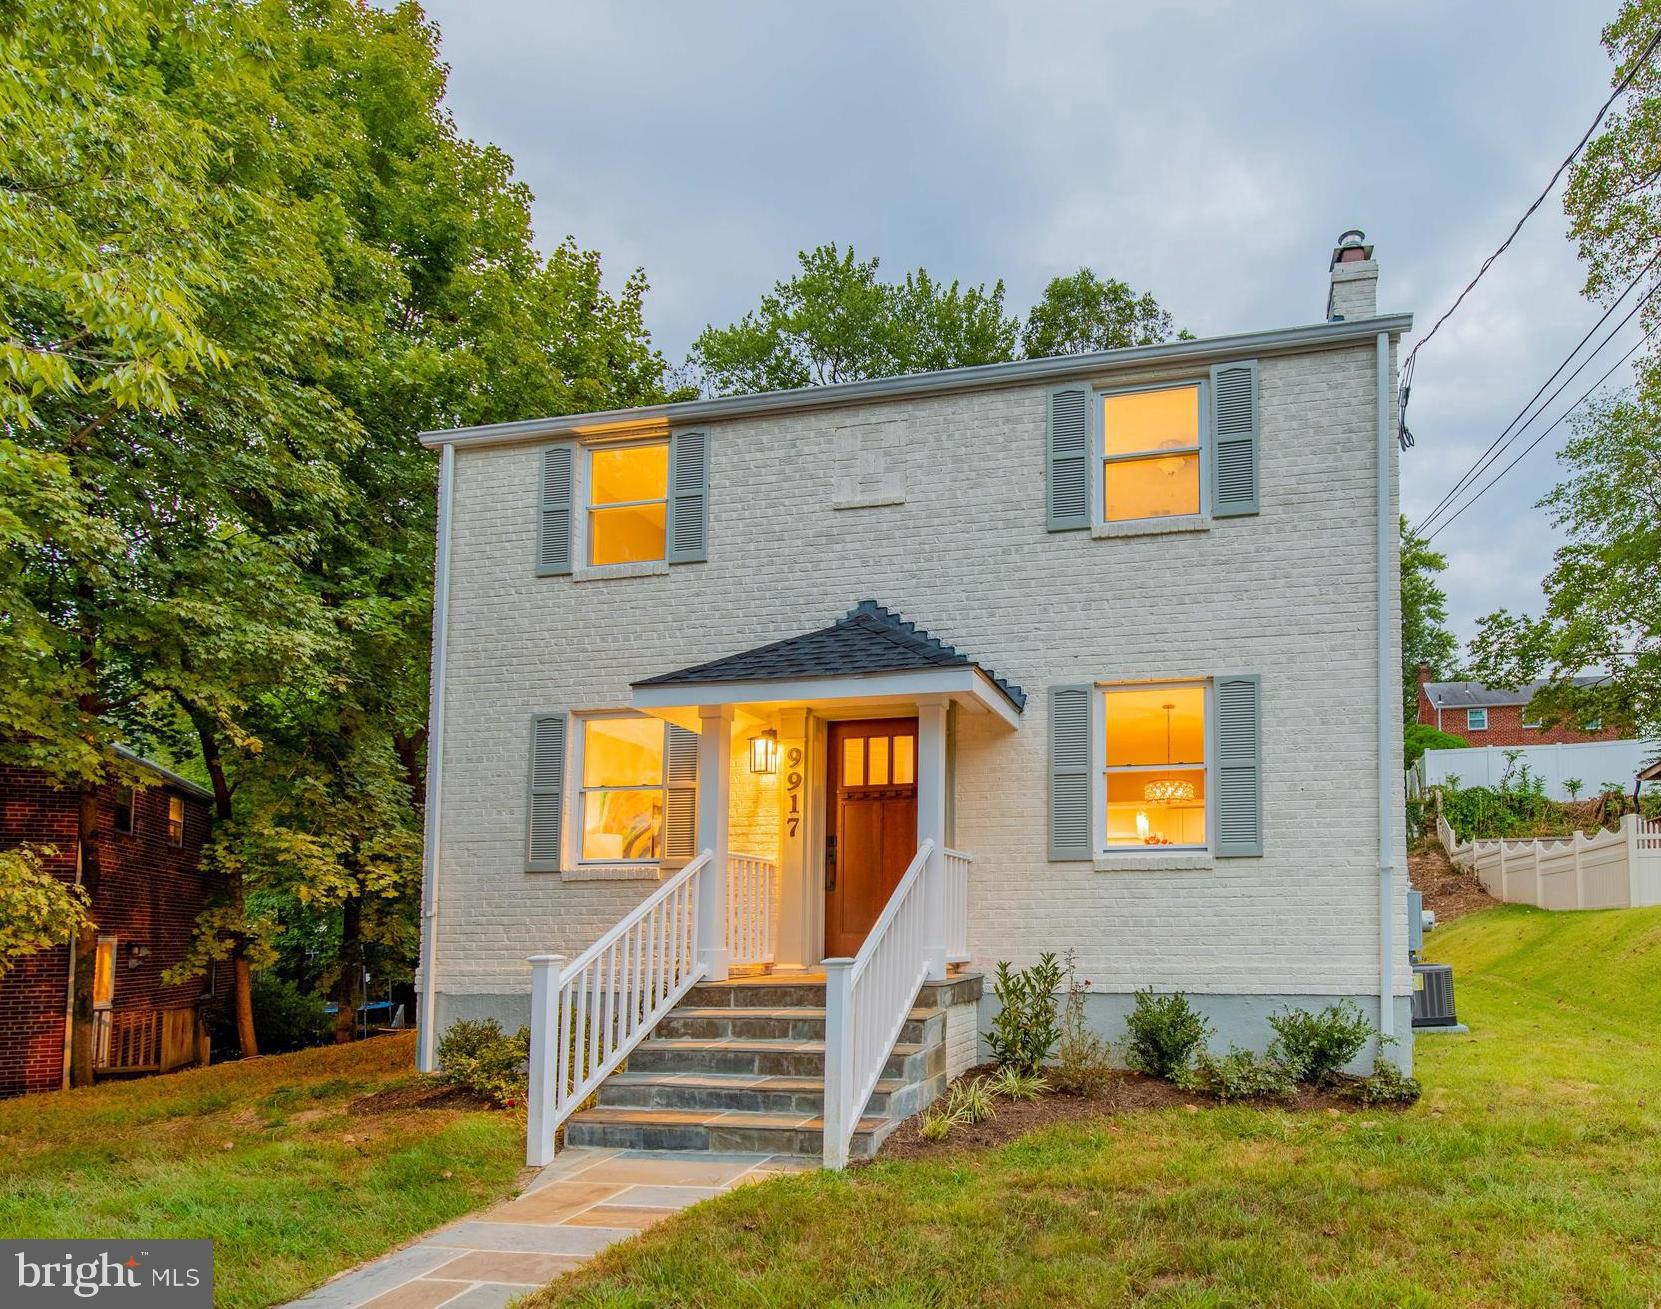 9917 TENBROOK DRIVE, SILVER SPRING, MD 20901